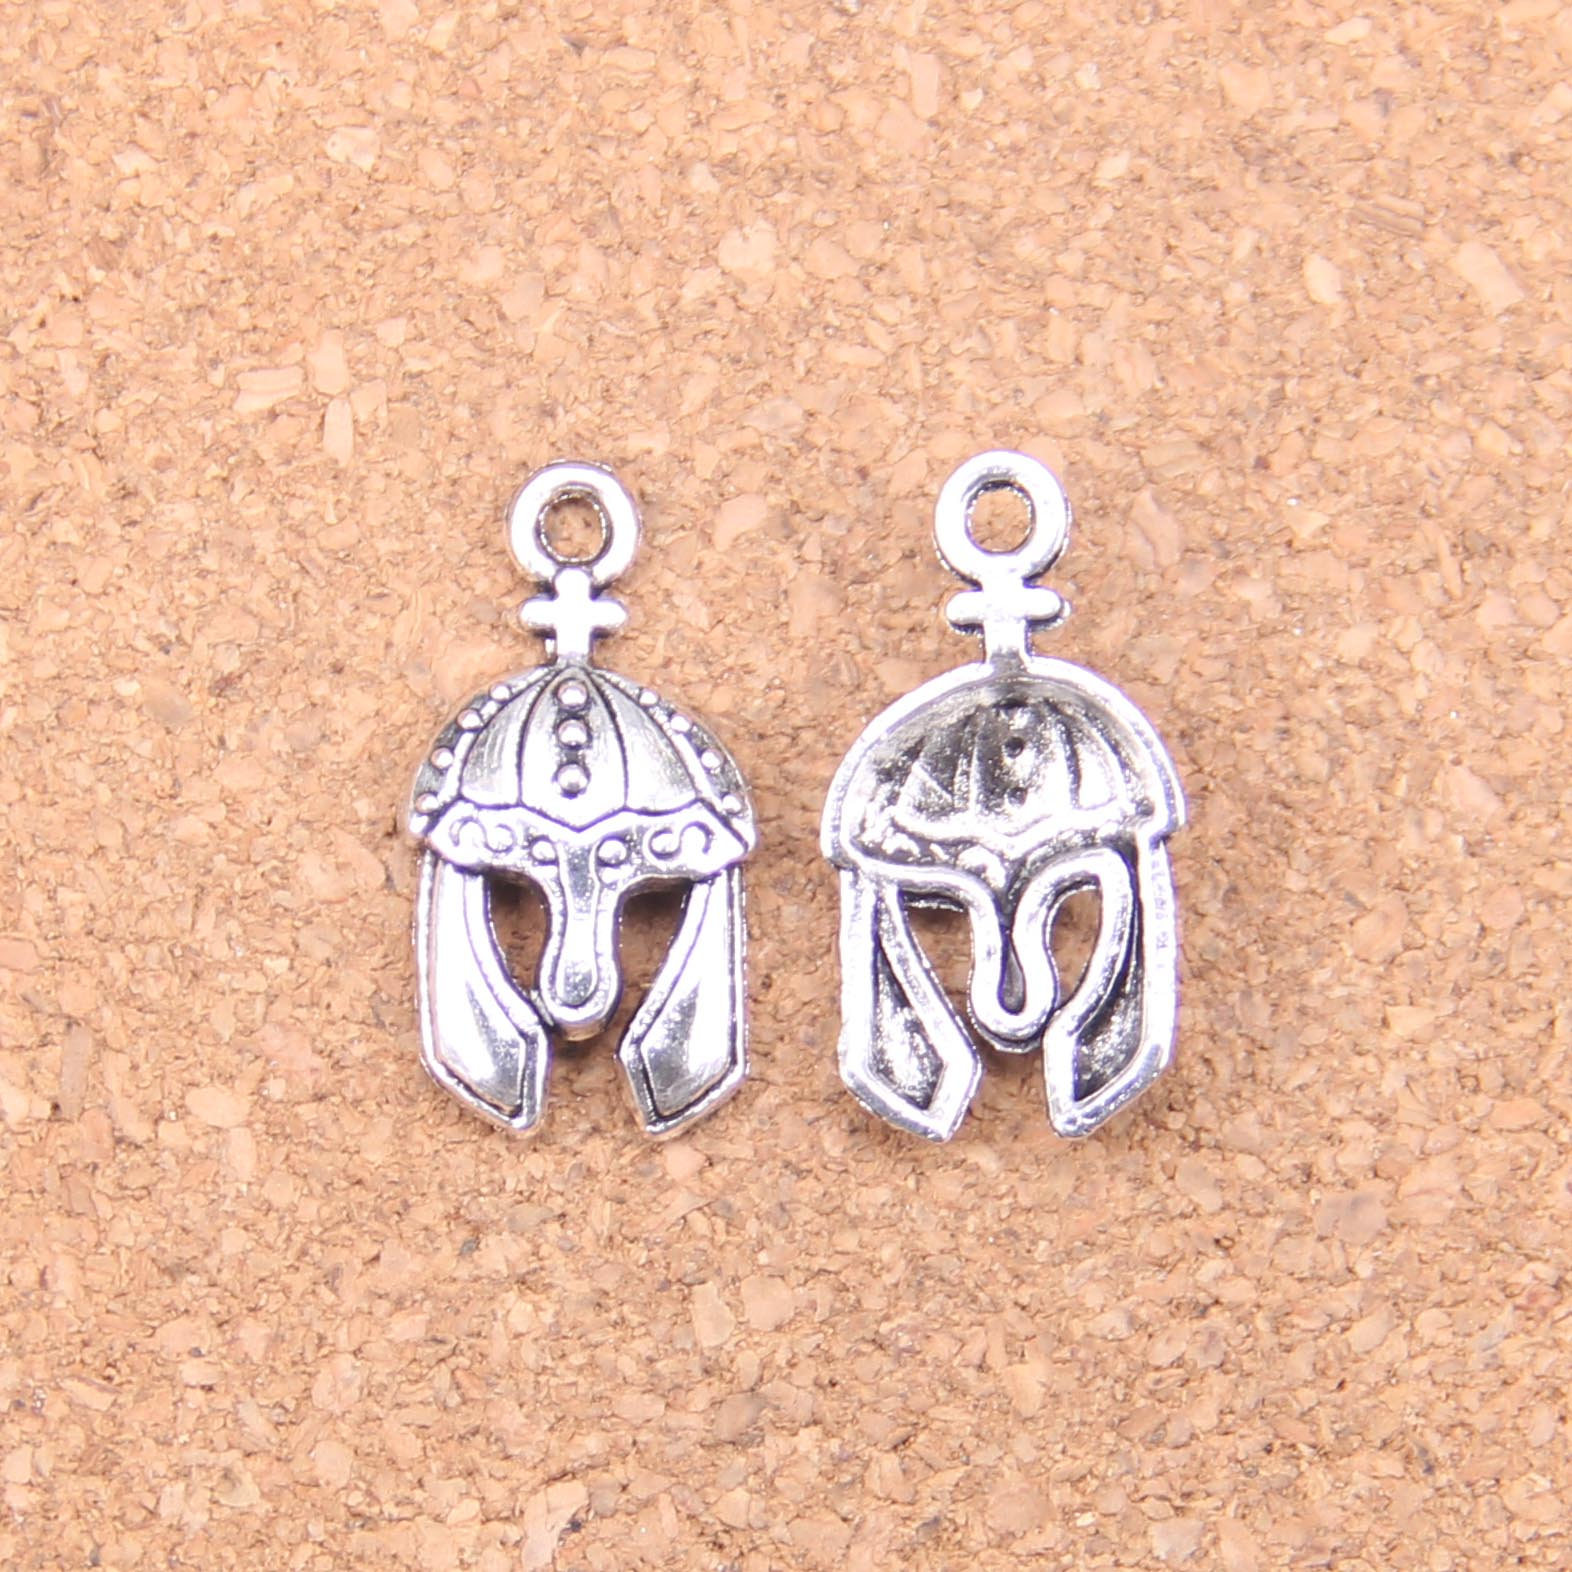 Mua 96pcs Charms soldiers helmet 24x12mm Antique Pendants,Vintage Tibetan Silver Jewelry,DIY for bracelet necklace